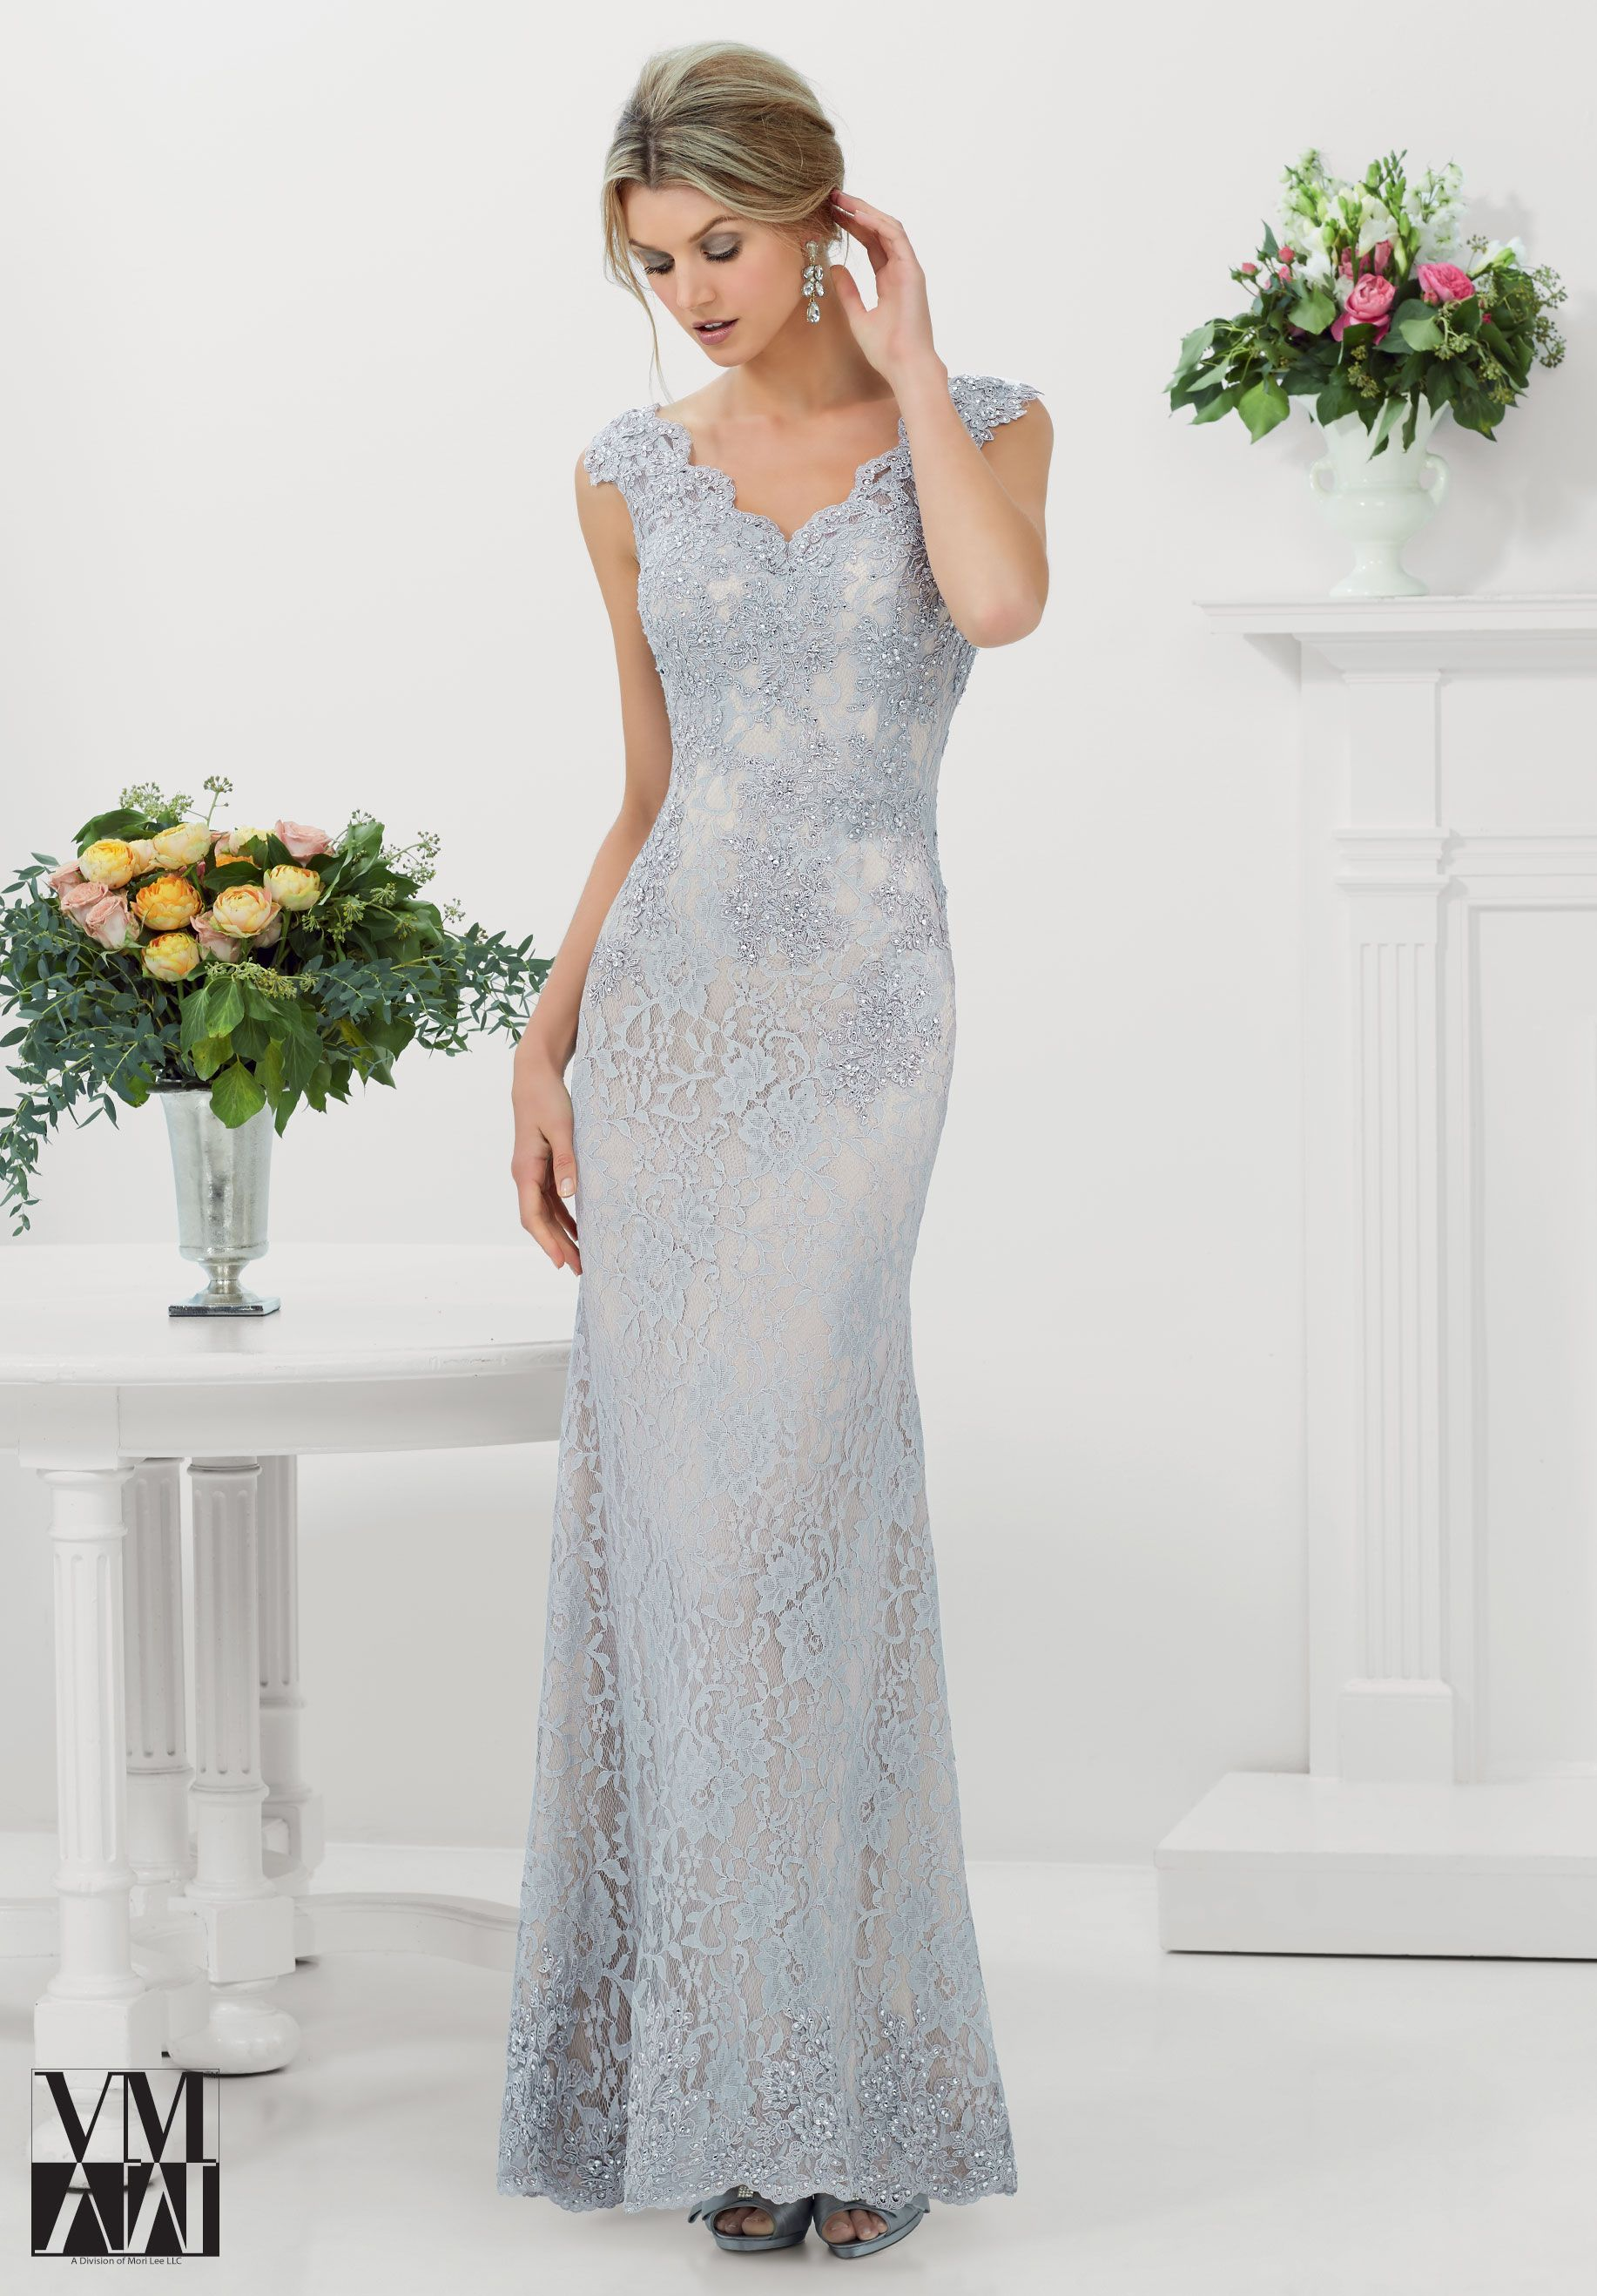 Evening gowns and mother of the bride dresses dress style 71116 charm the room with this mori lee vm 71116 dress it is designed with illusion cap sleeves as well as button closure for a flawless fit ombrellifo Images